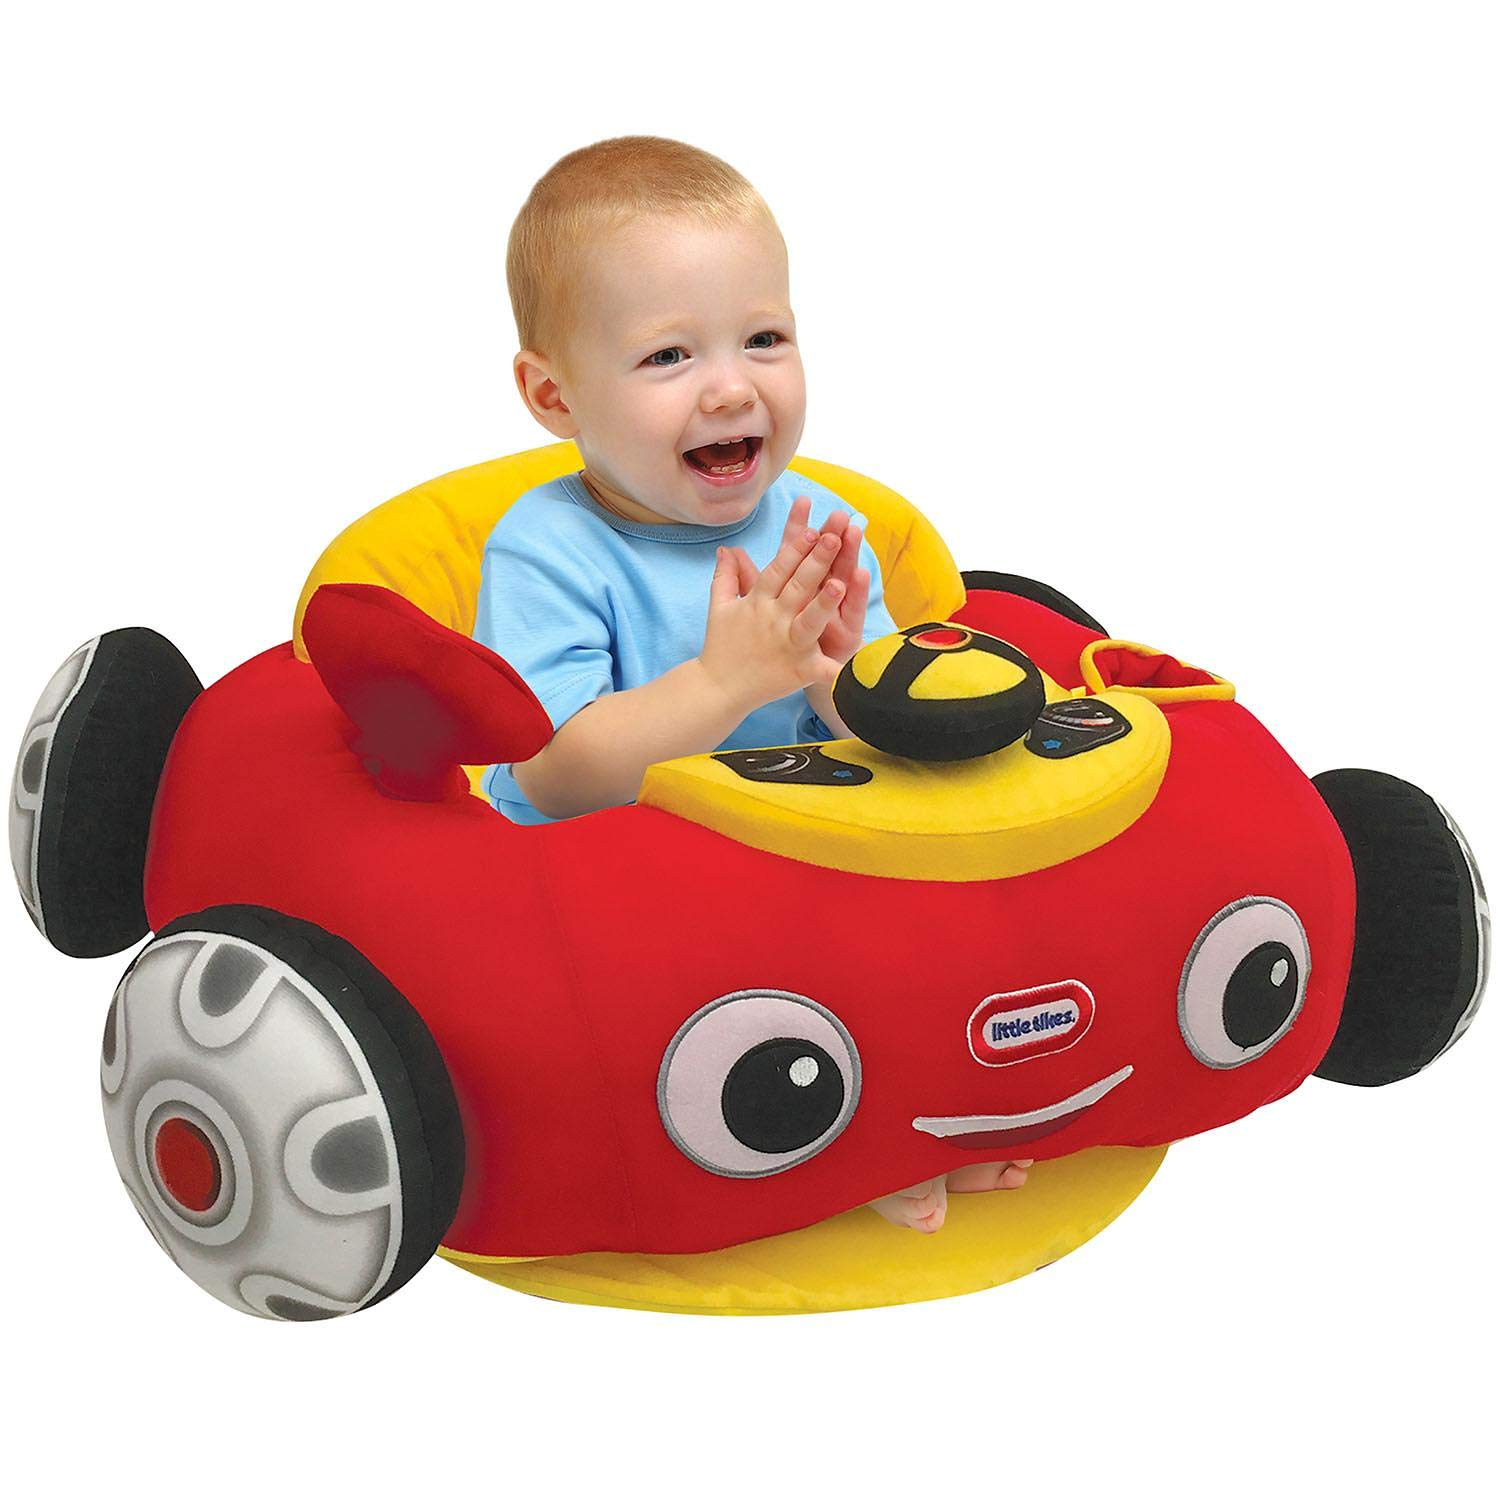 Cozy Coupe Infant Plush Floor Chair Baby Soft Seats Toddler Toys